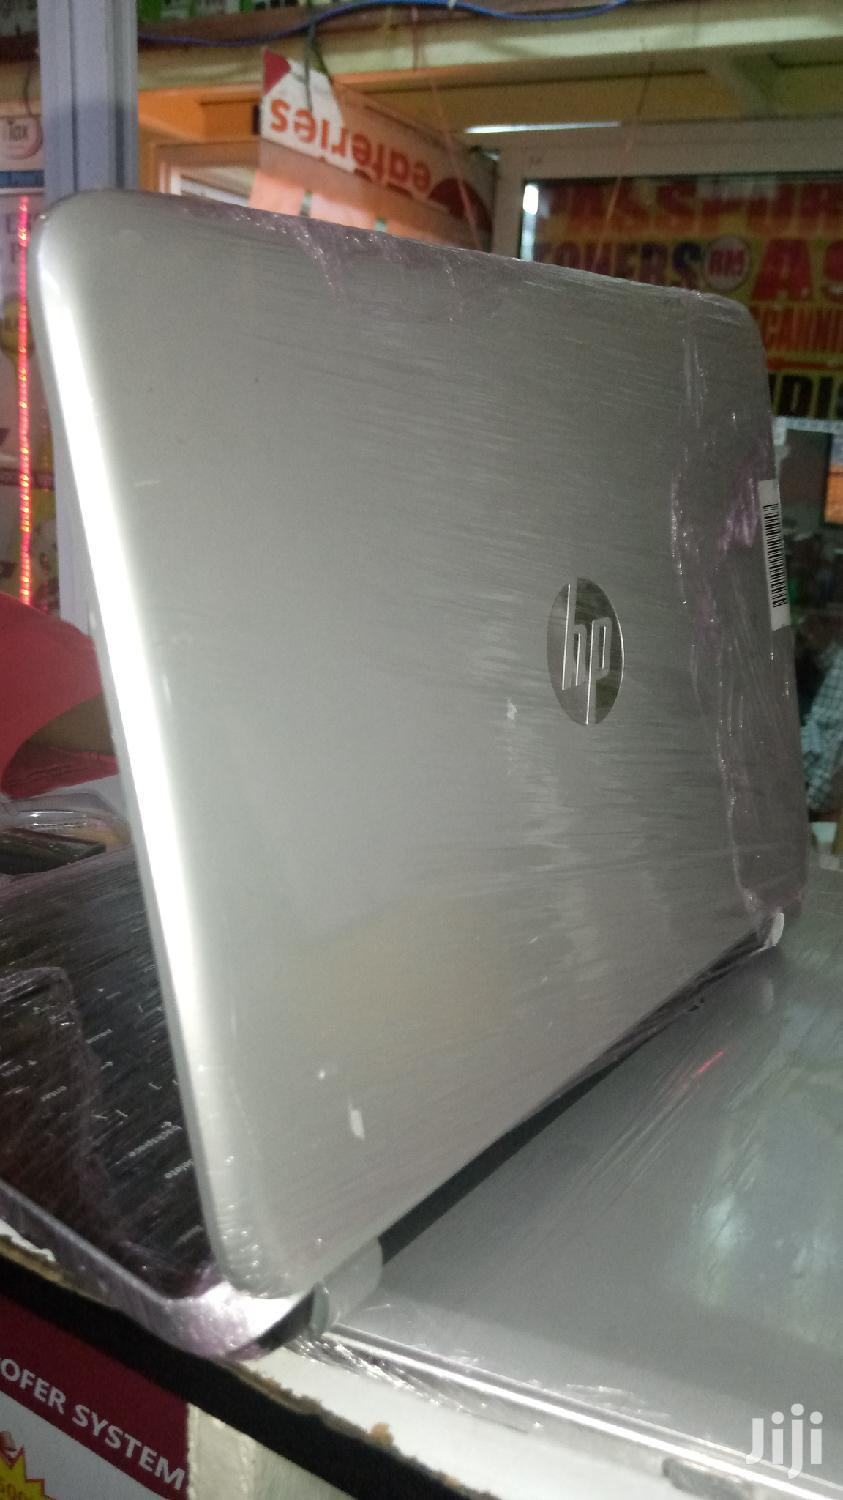 Hp 215 G1 14 Inches 320Gb Hdd 4Gb Ram | Laptops & Computers for sale in Nairobi Central, Nairobi, Kenya